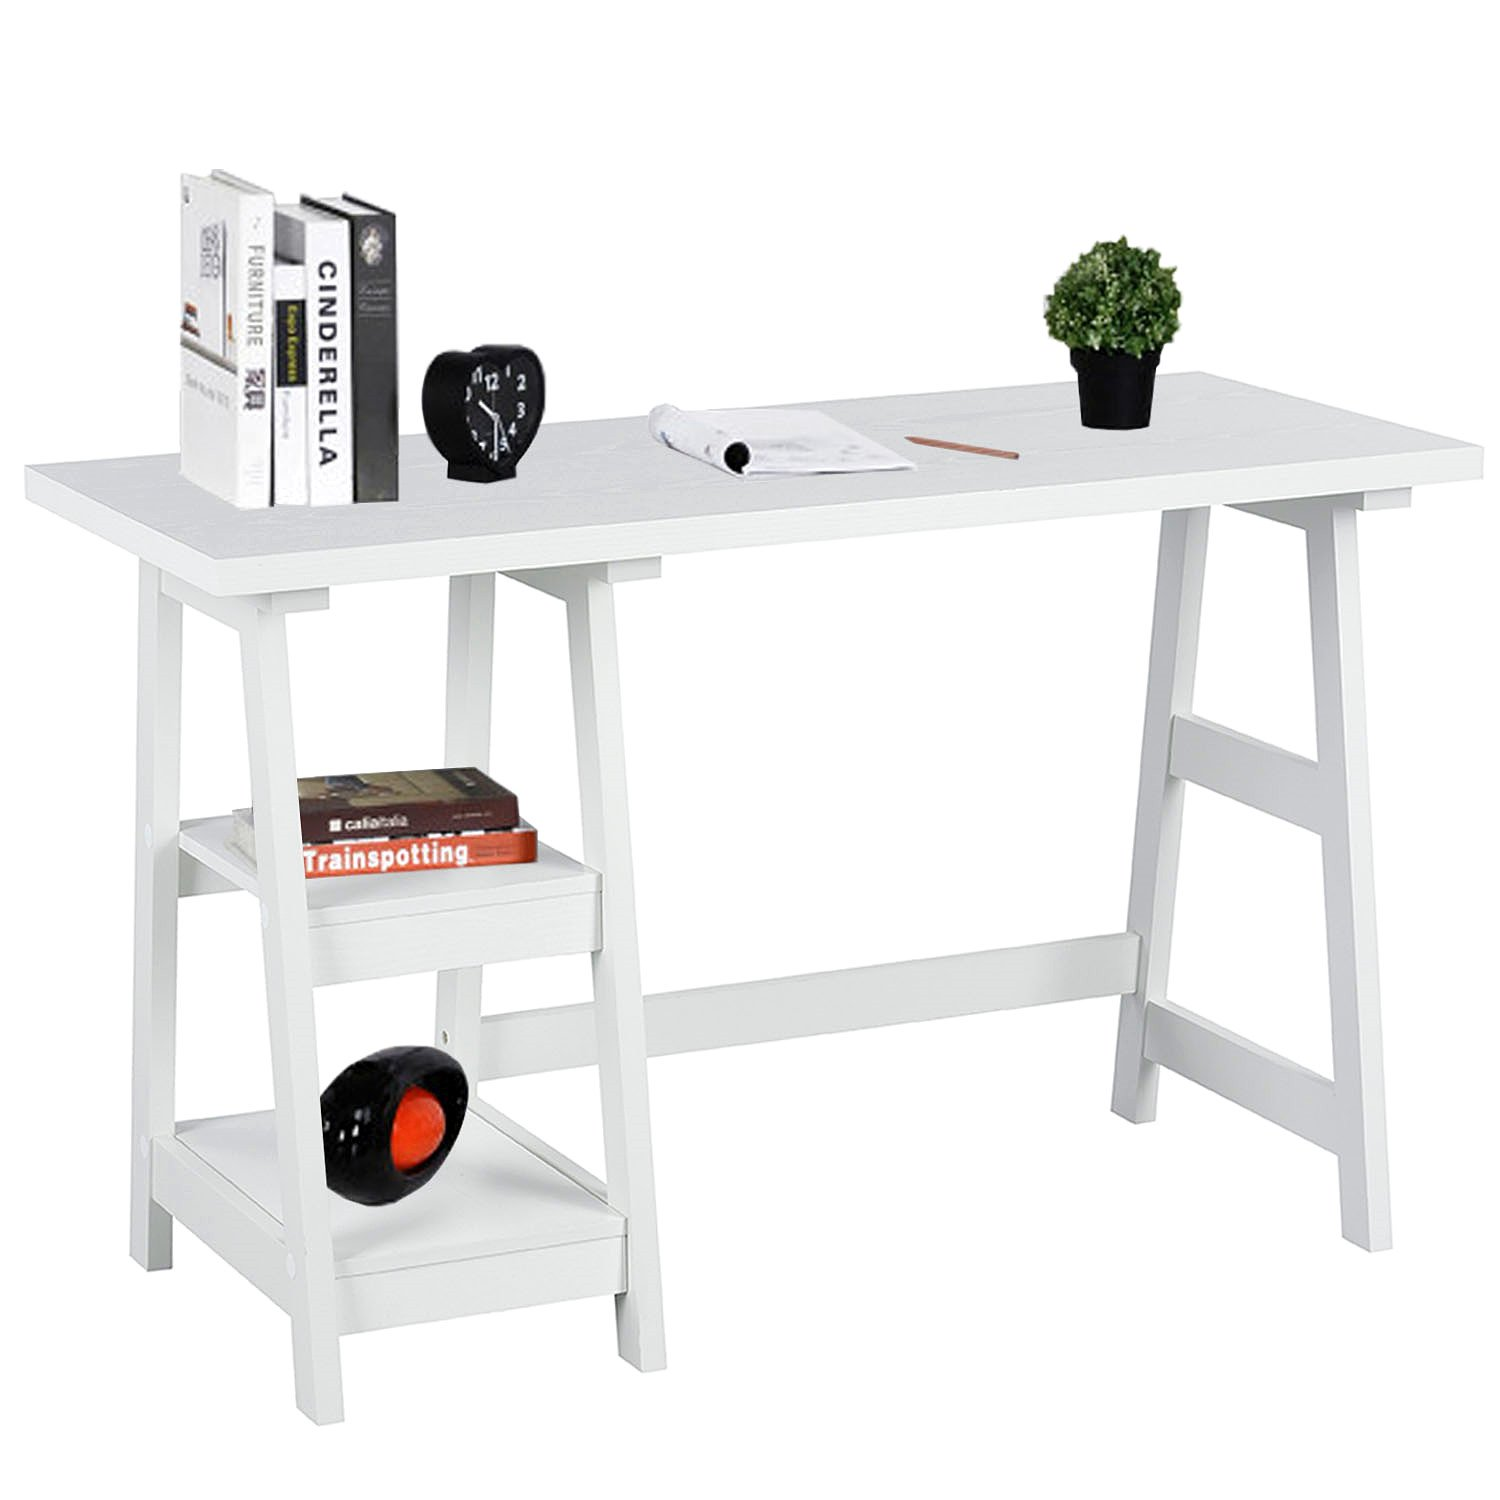 Trestle White Computer-Desk with 2 Removable Storage Shelves Home Office Workstation Solid Wood Study Writing-Desk Computer Armoires Hutches 46.8 x 19.9 x 29 inches, CAS004 by Coavas